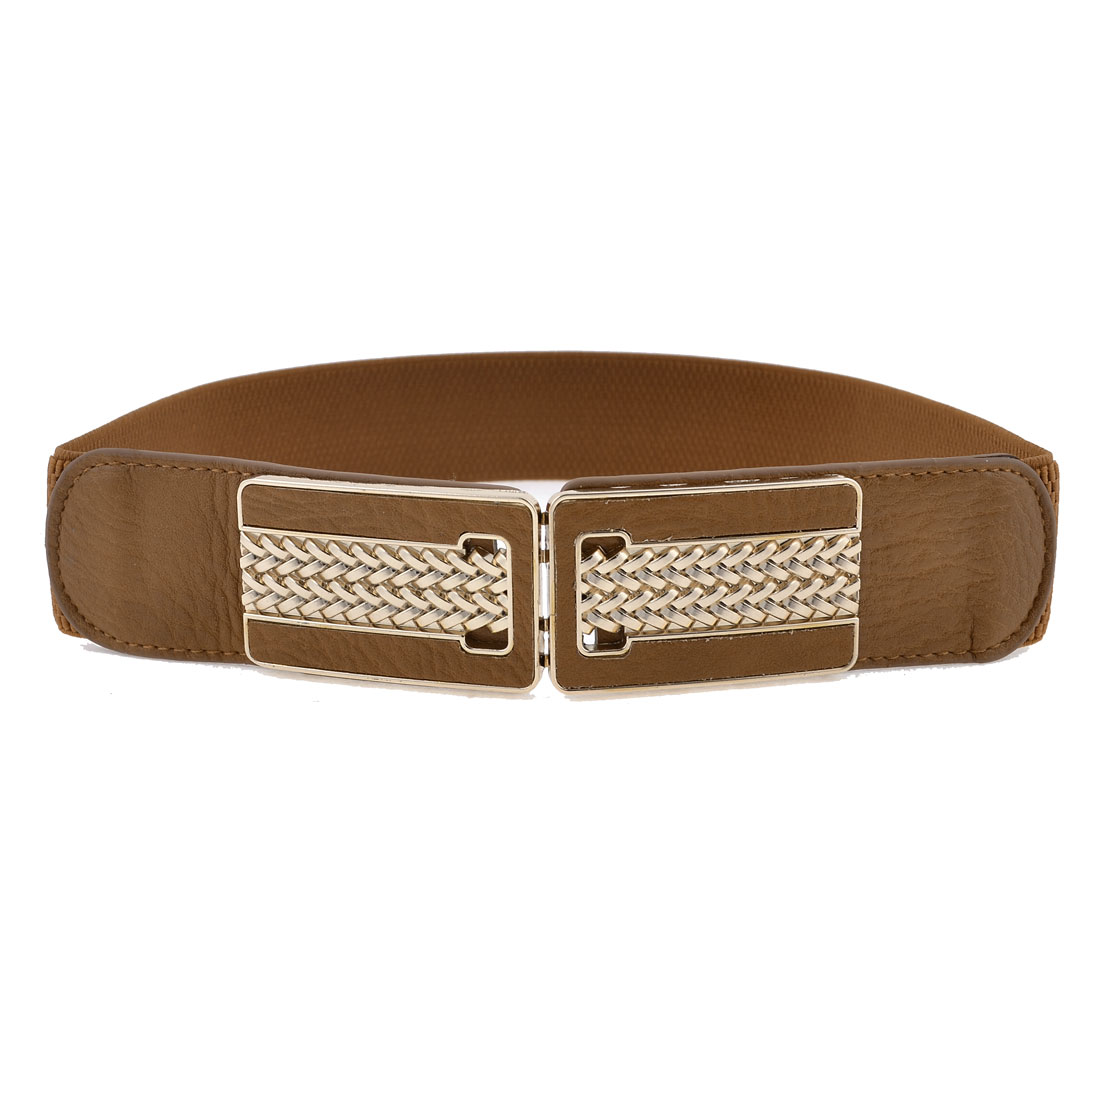 Brown Faux Leather Front Metal Frame Interlock Buckle Stretch Waist Belt Band